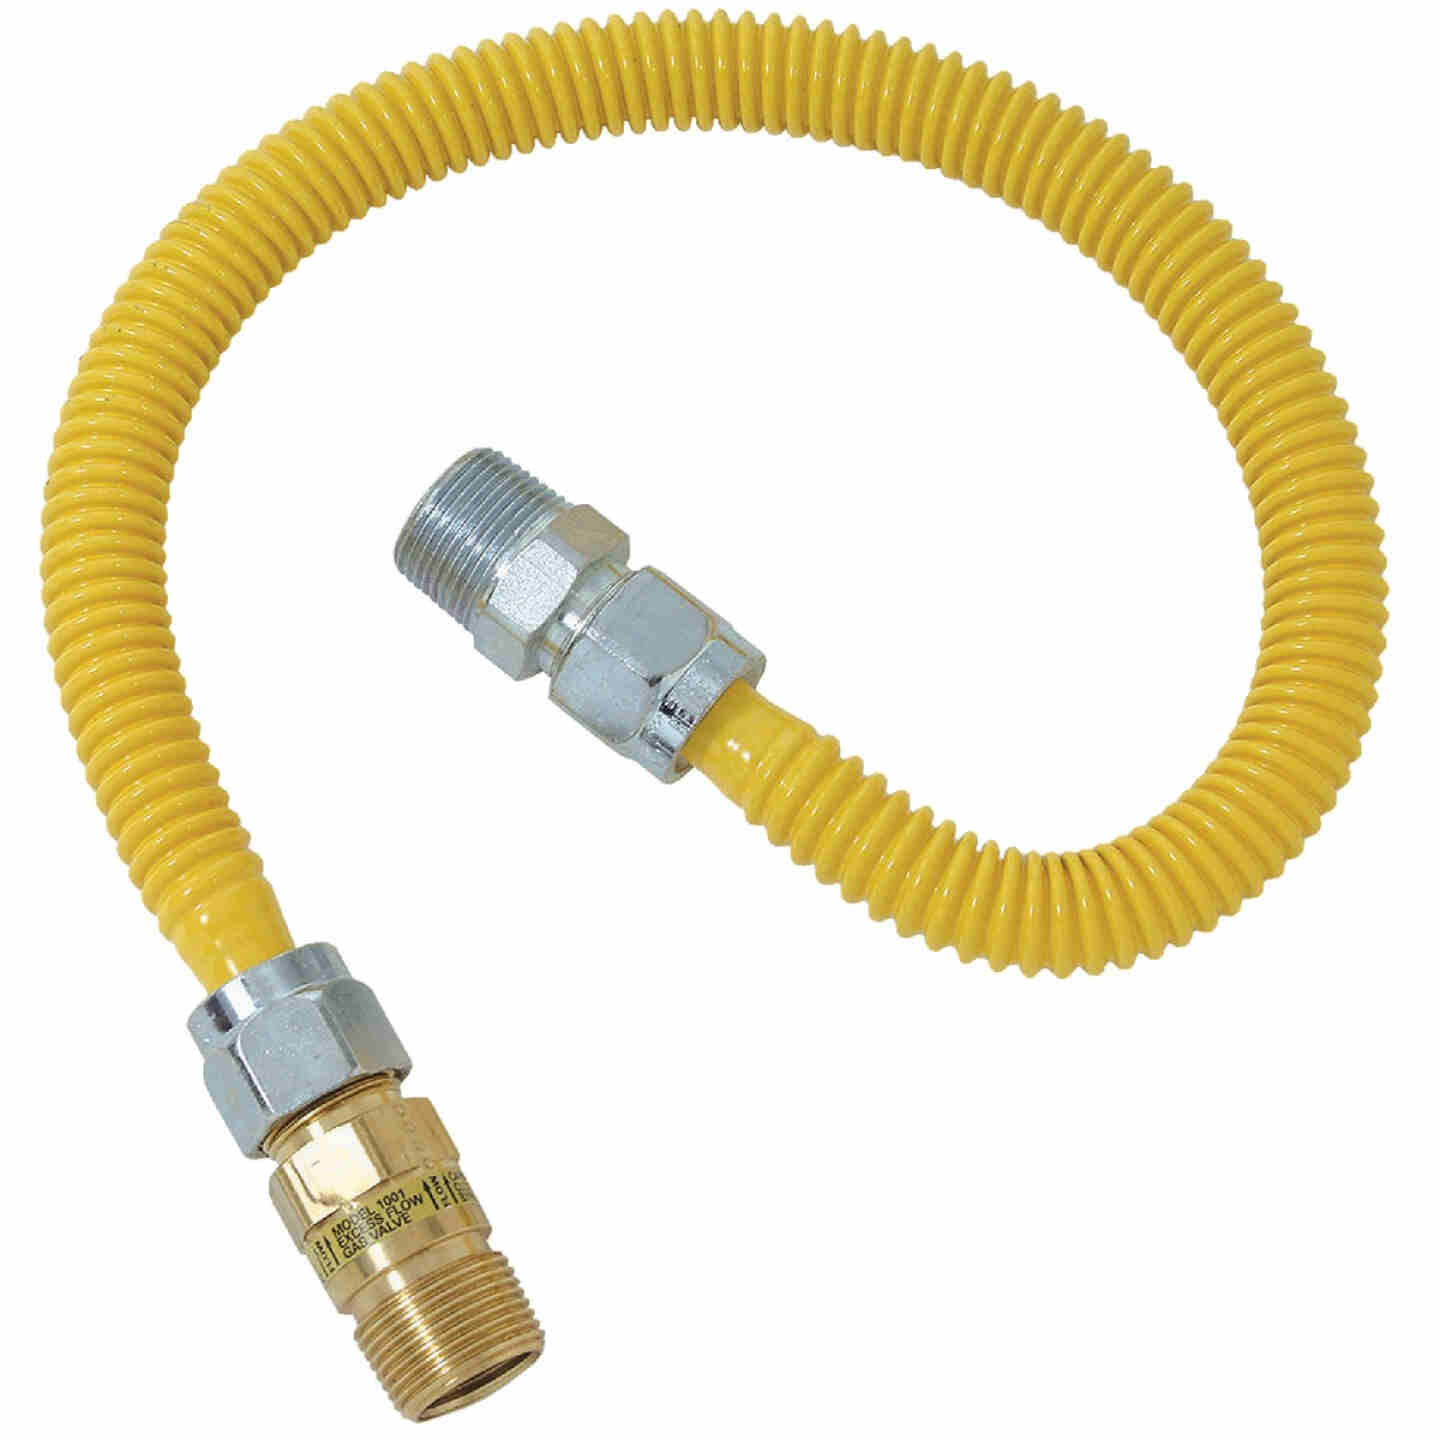 Dormont 5/8 In. OD x 48 In. Coated Stainless Steel Gas Connector, 1/2 In. MIP (Tapped 3/8 In. FIP) x 1/2 In. MIP SmartSense Image 1